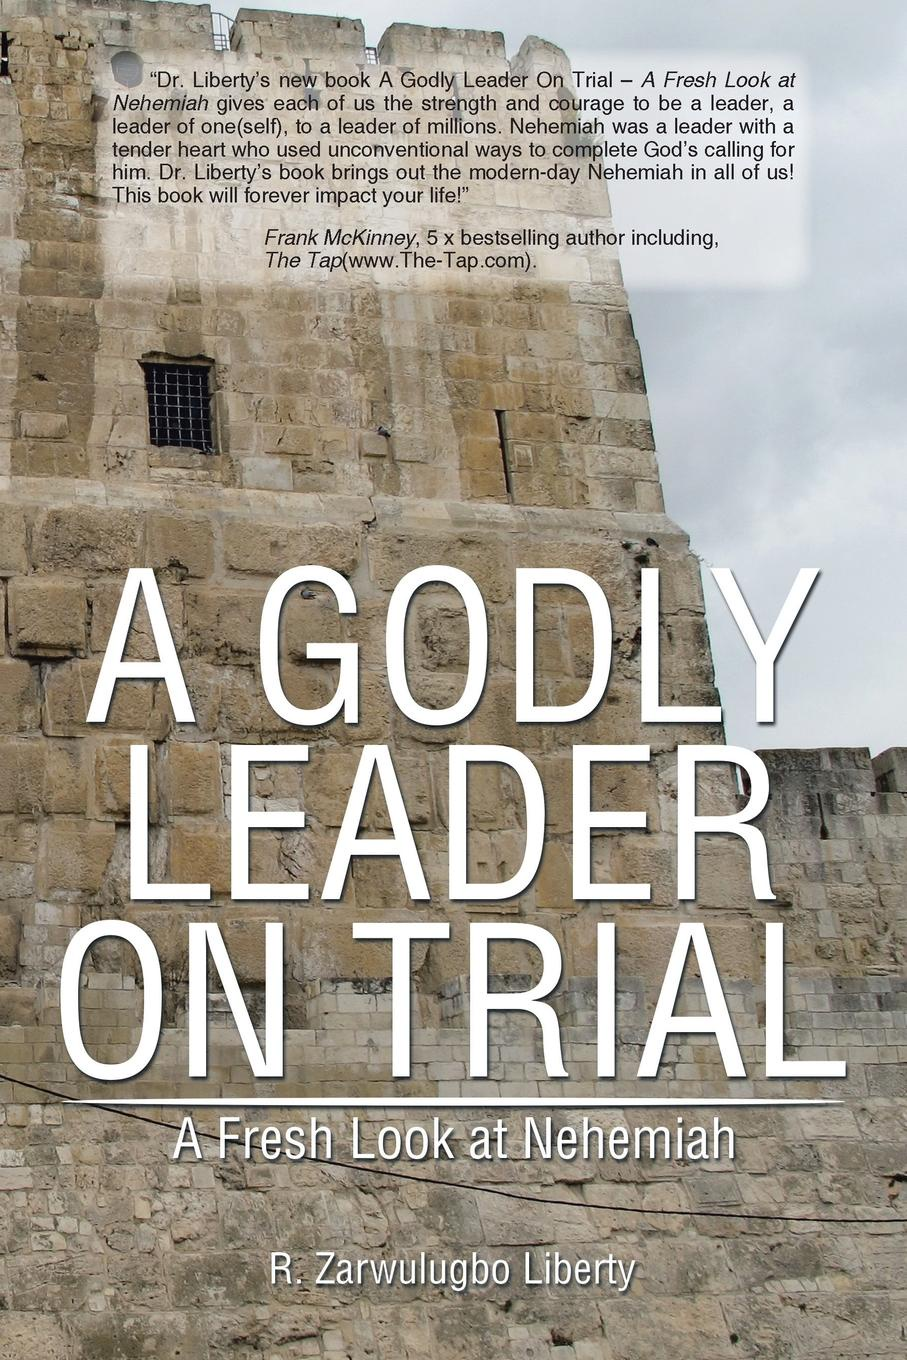 R. Zarwulugbo Liberty To a Godly Leader on Trial. A Fresh Look at Nehemiah history on trial